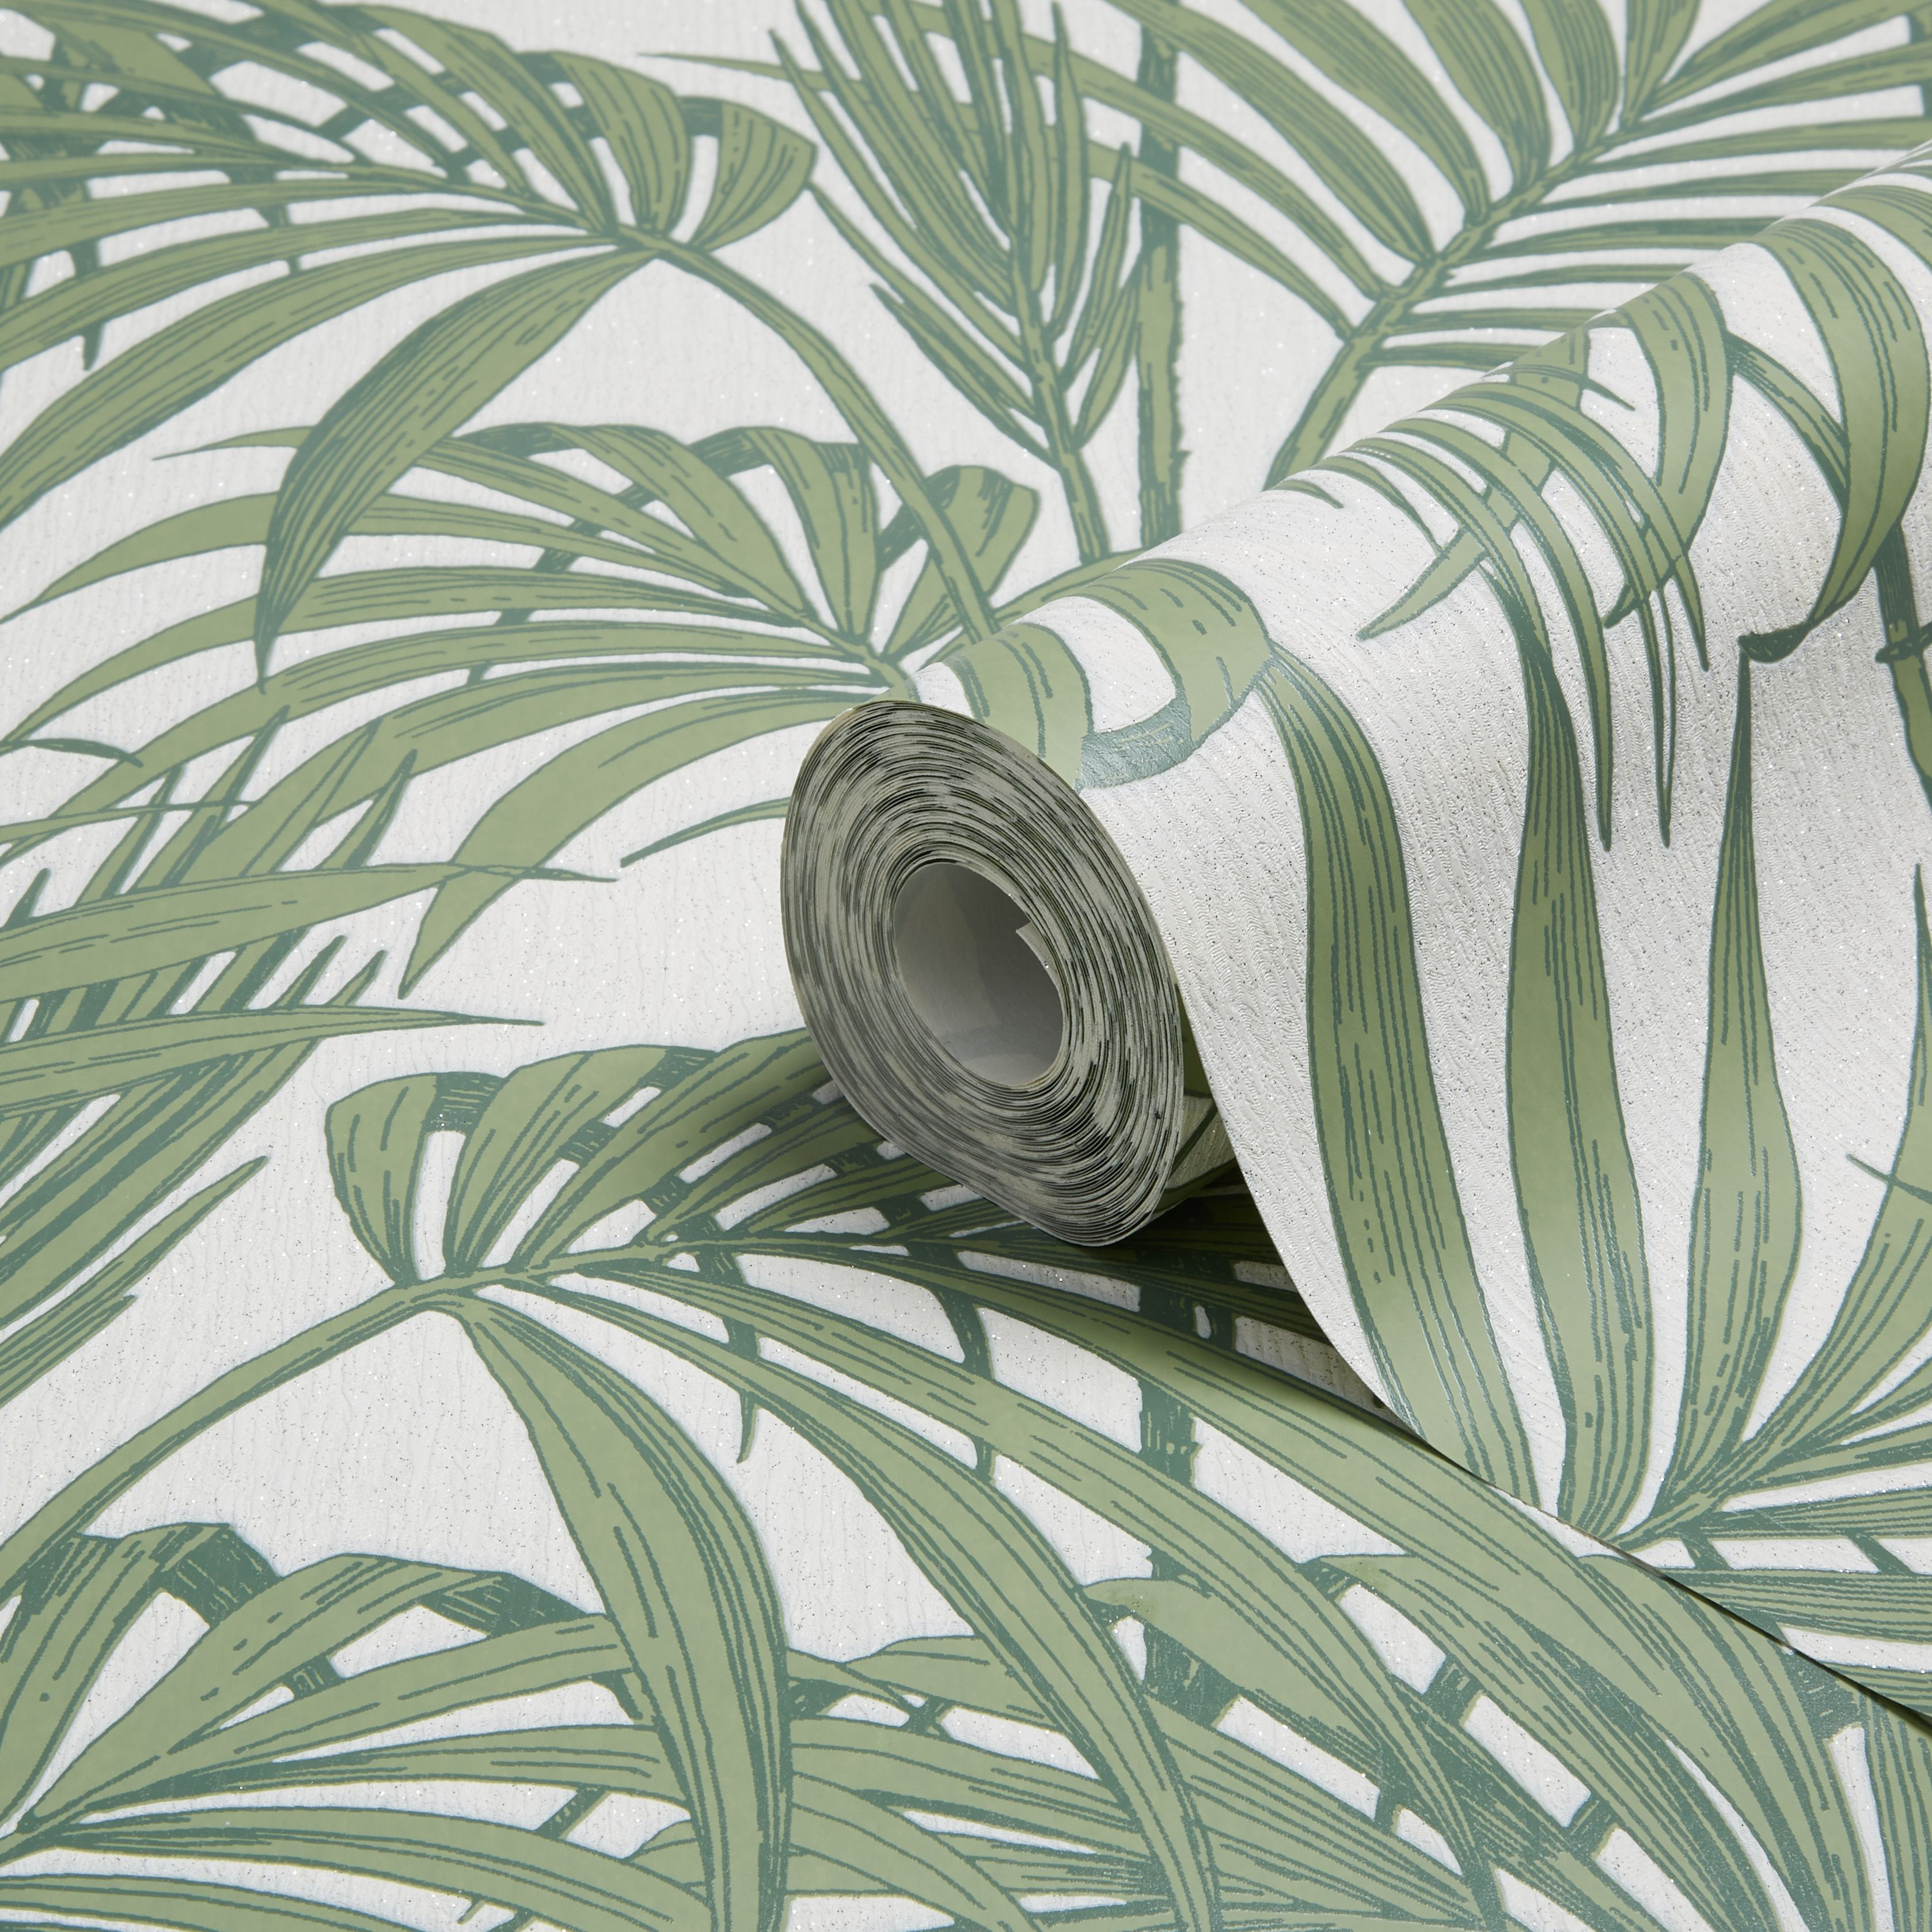 Graham Brown Julien Macdonald Honolulu Palm Green Foliage - Green and brown wallpaper